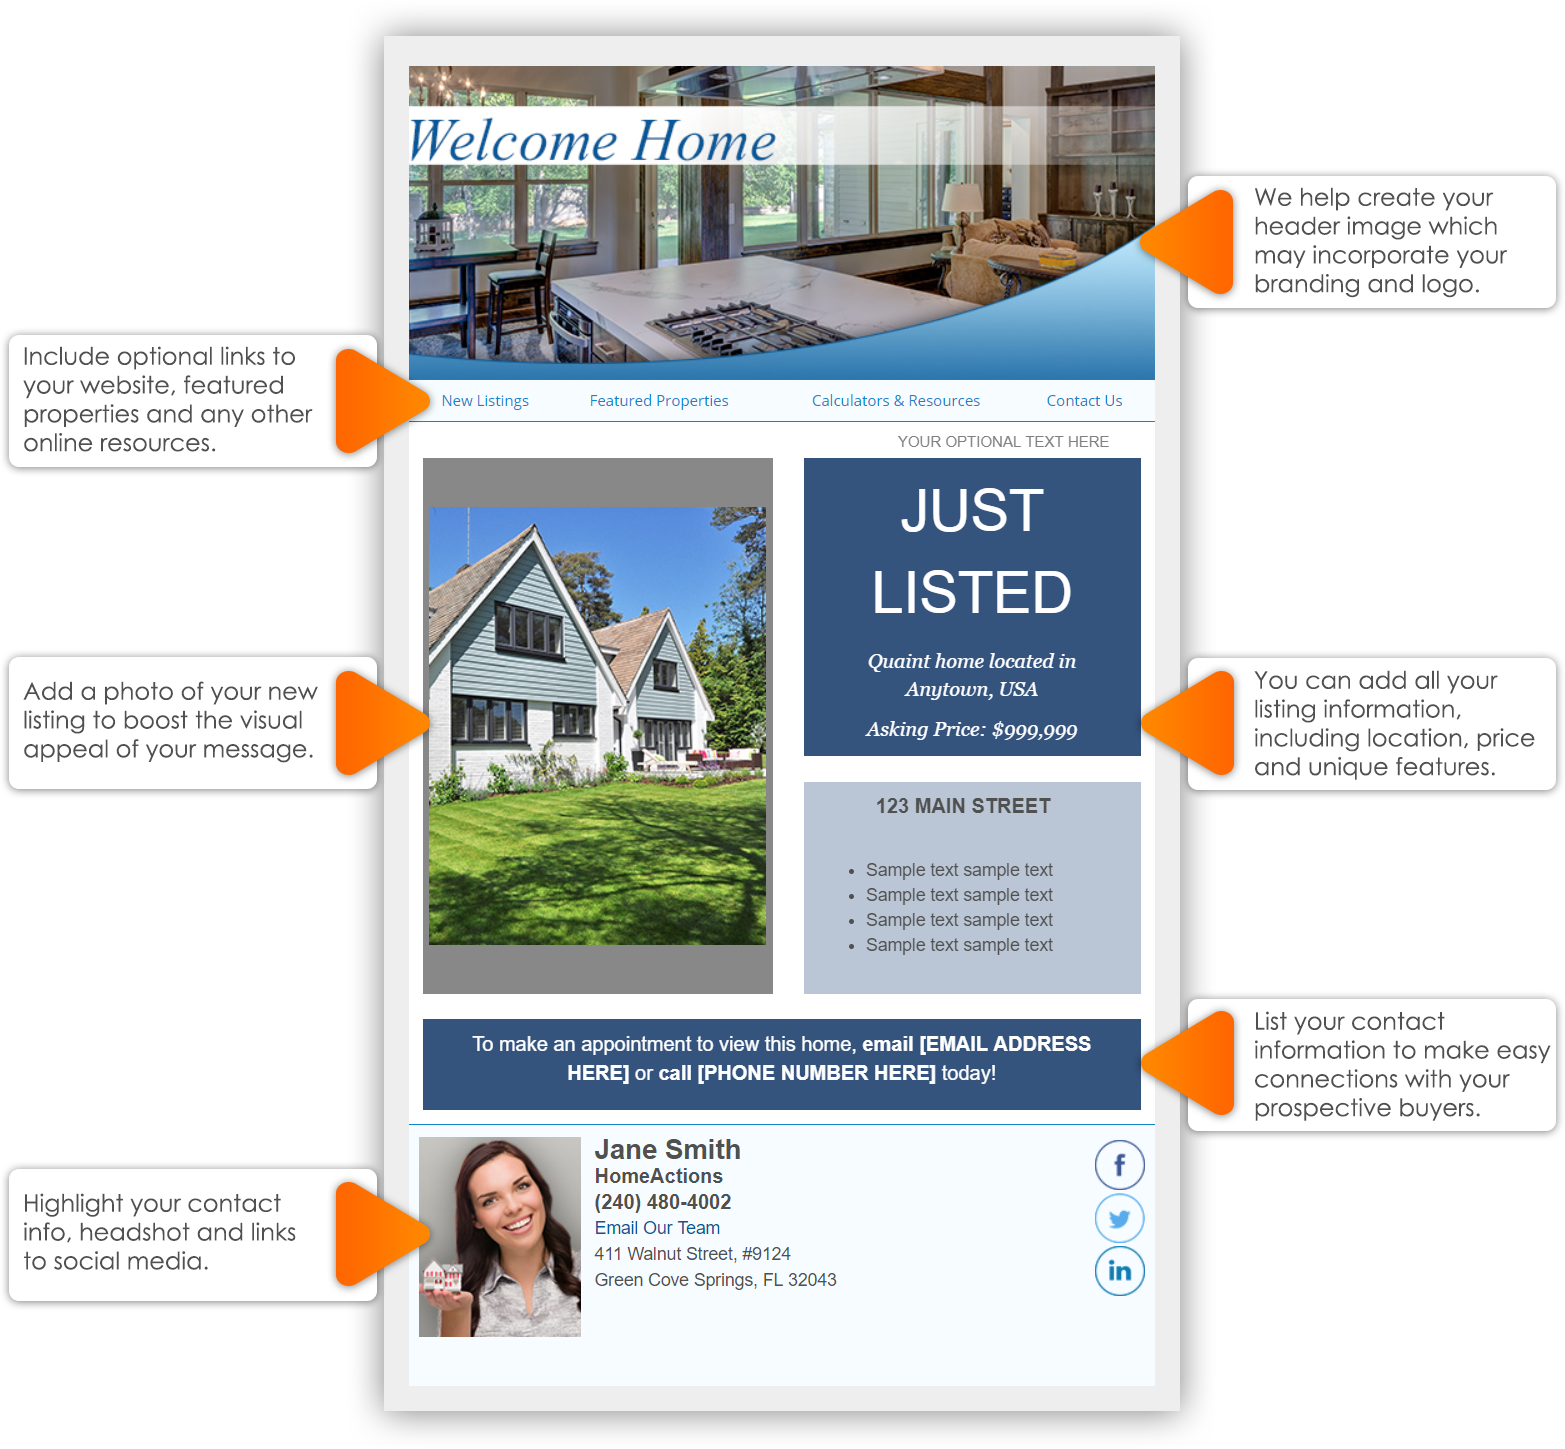 Just Listed Service from HomeActions & ZipLogix